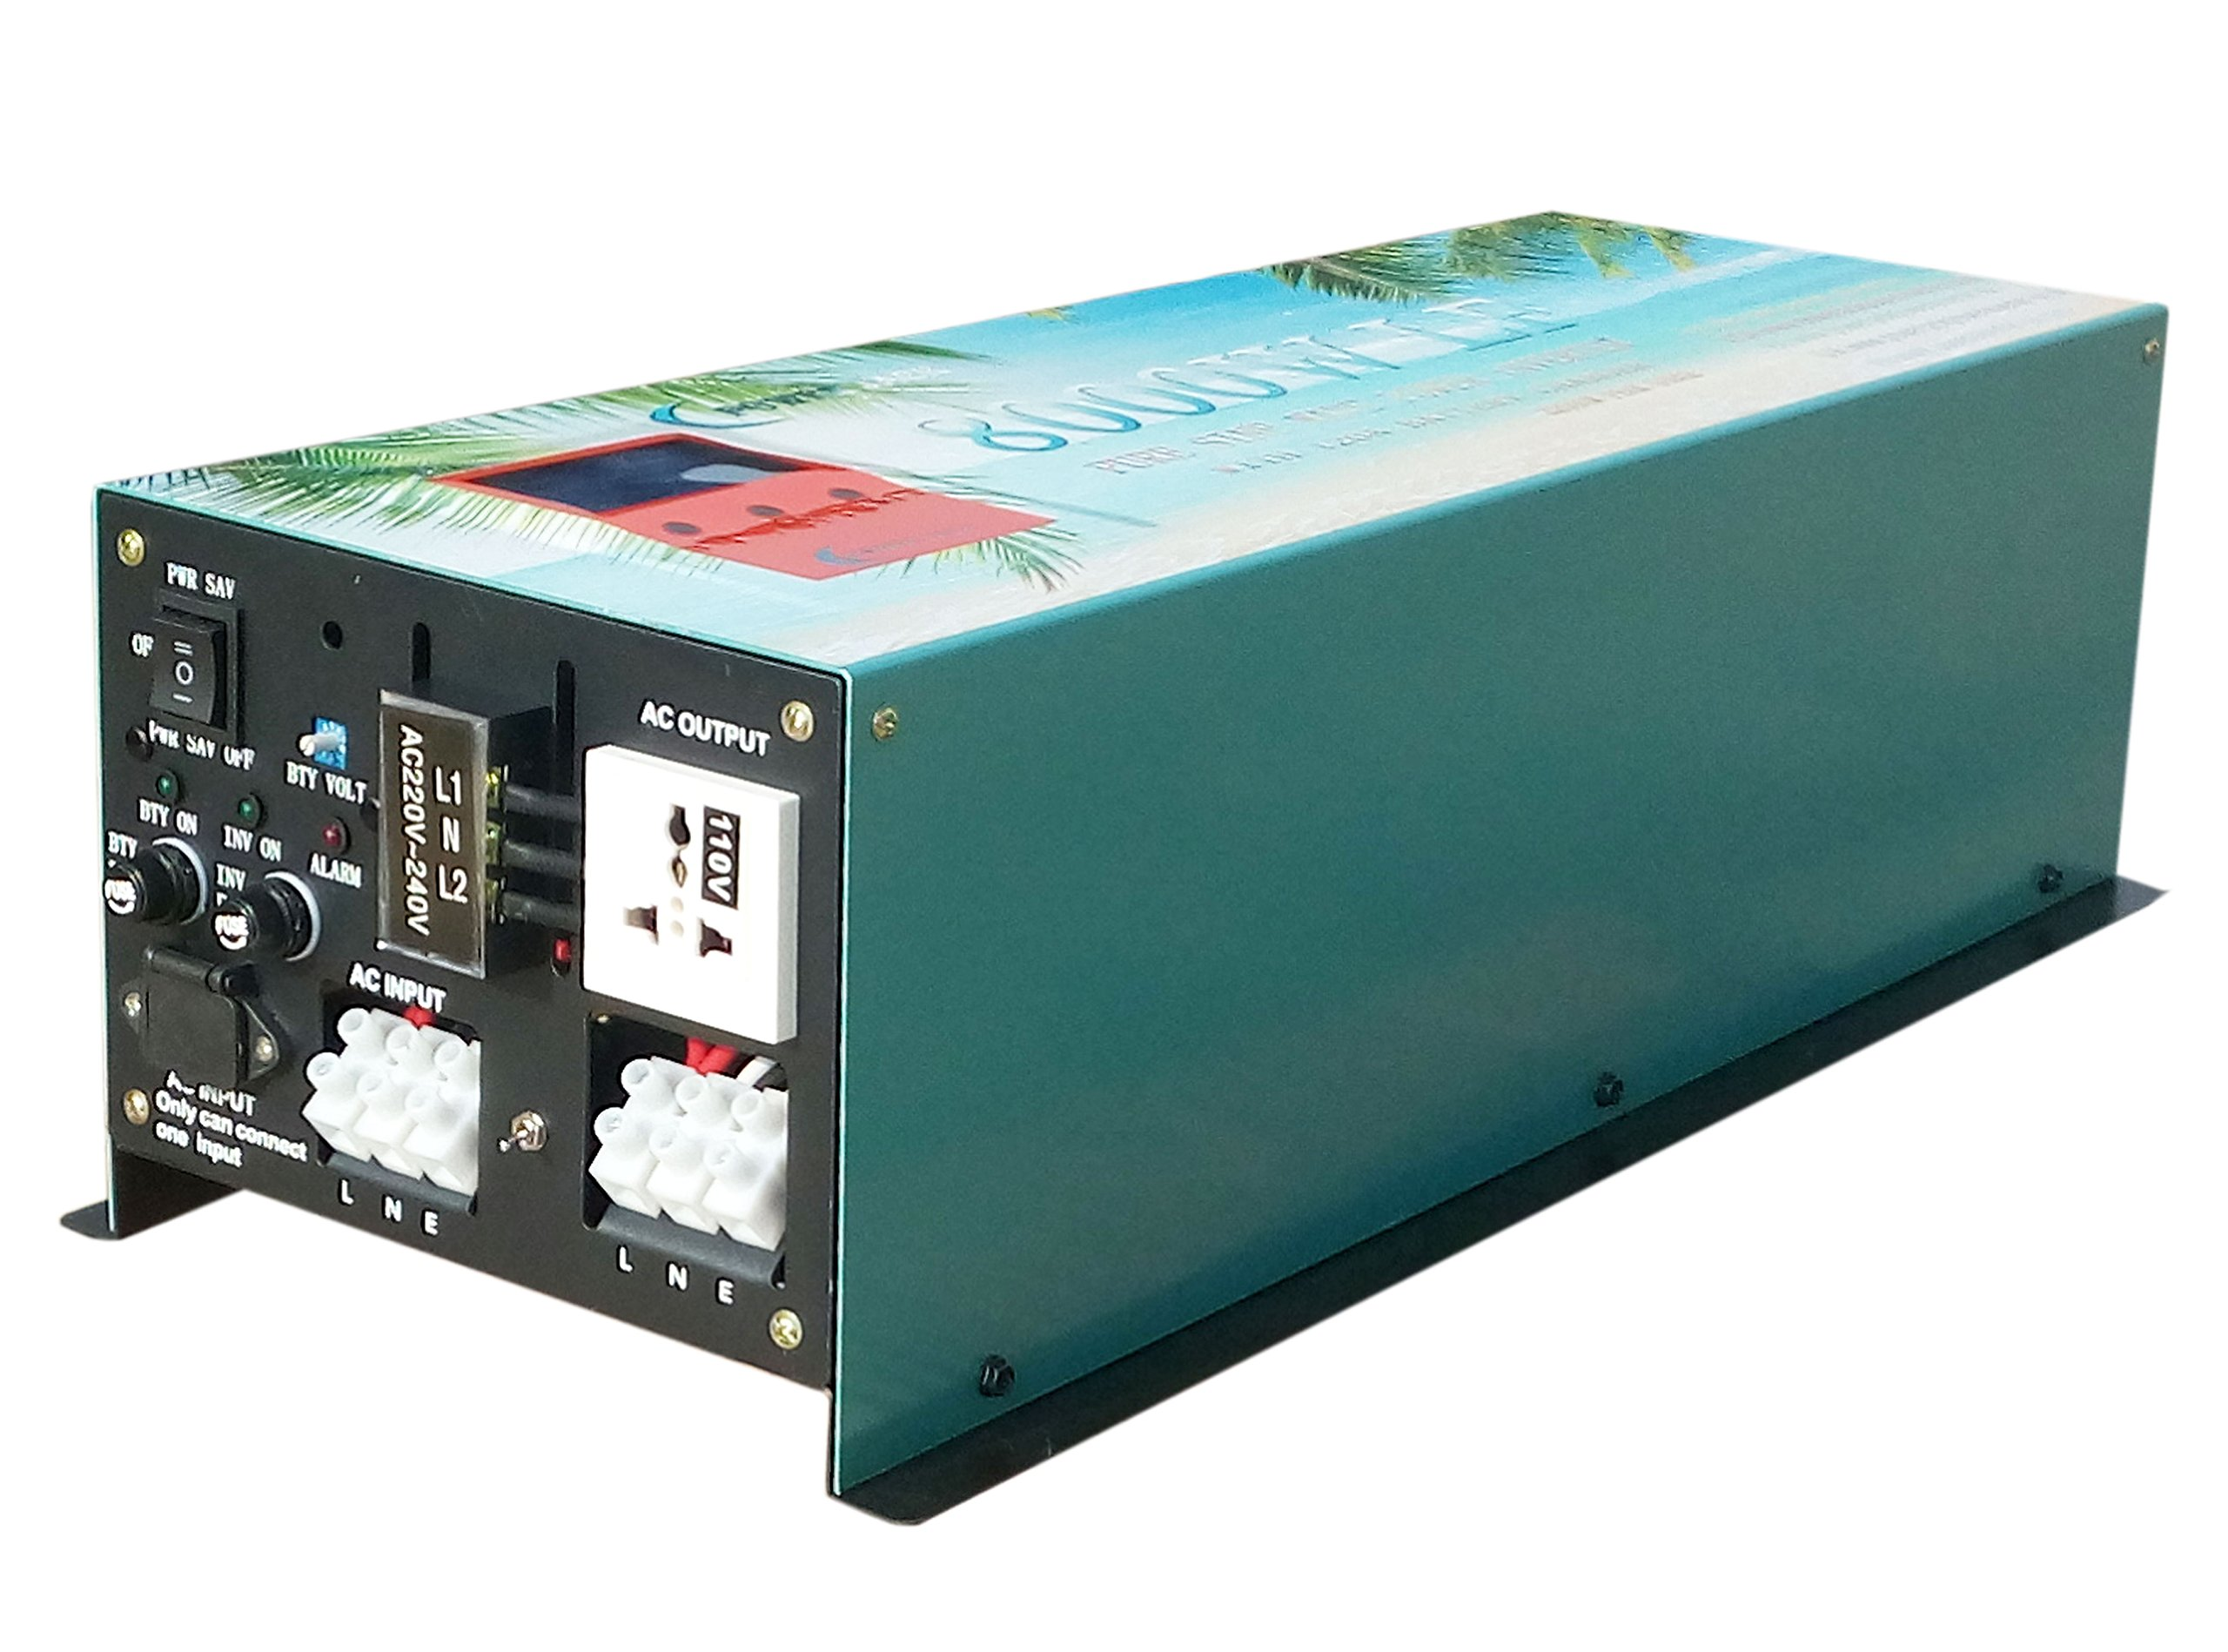 32000W peak 8000W LF Split Phase Pure Sine Wave Power Inverter DC 12V to AC 110V&220V 60Hz, with 120A Battery Charger/UPS/LCD display